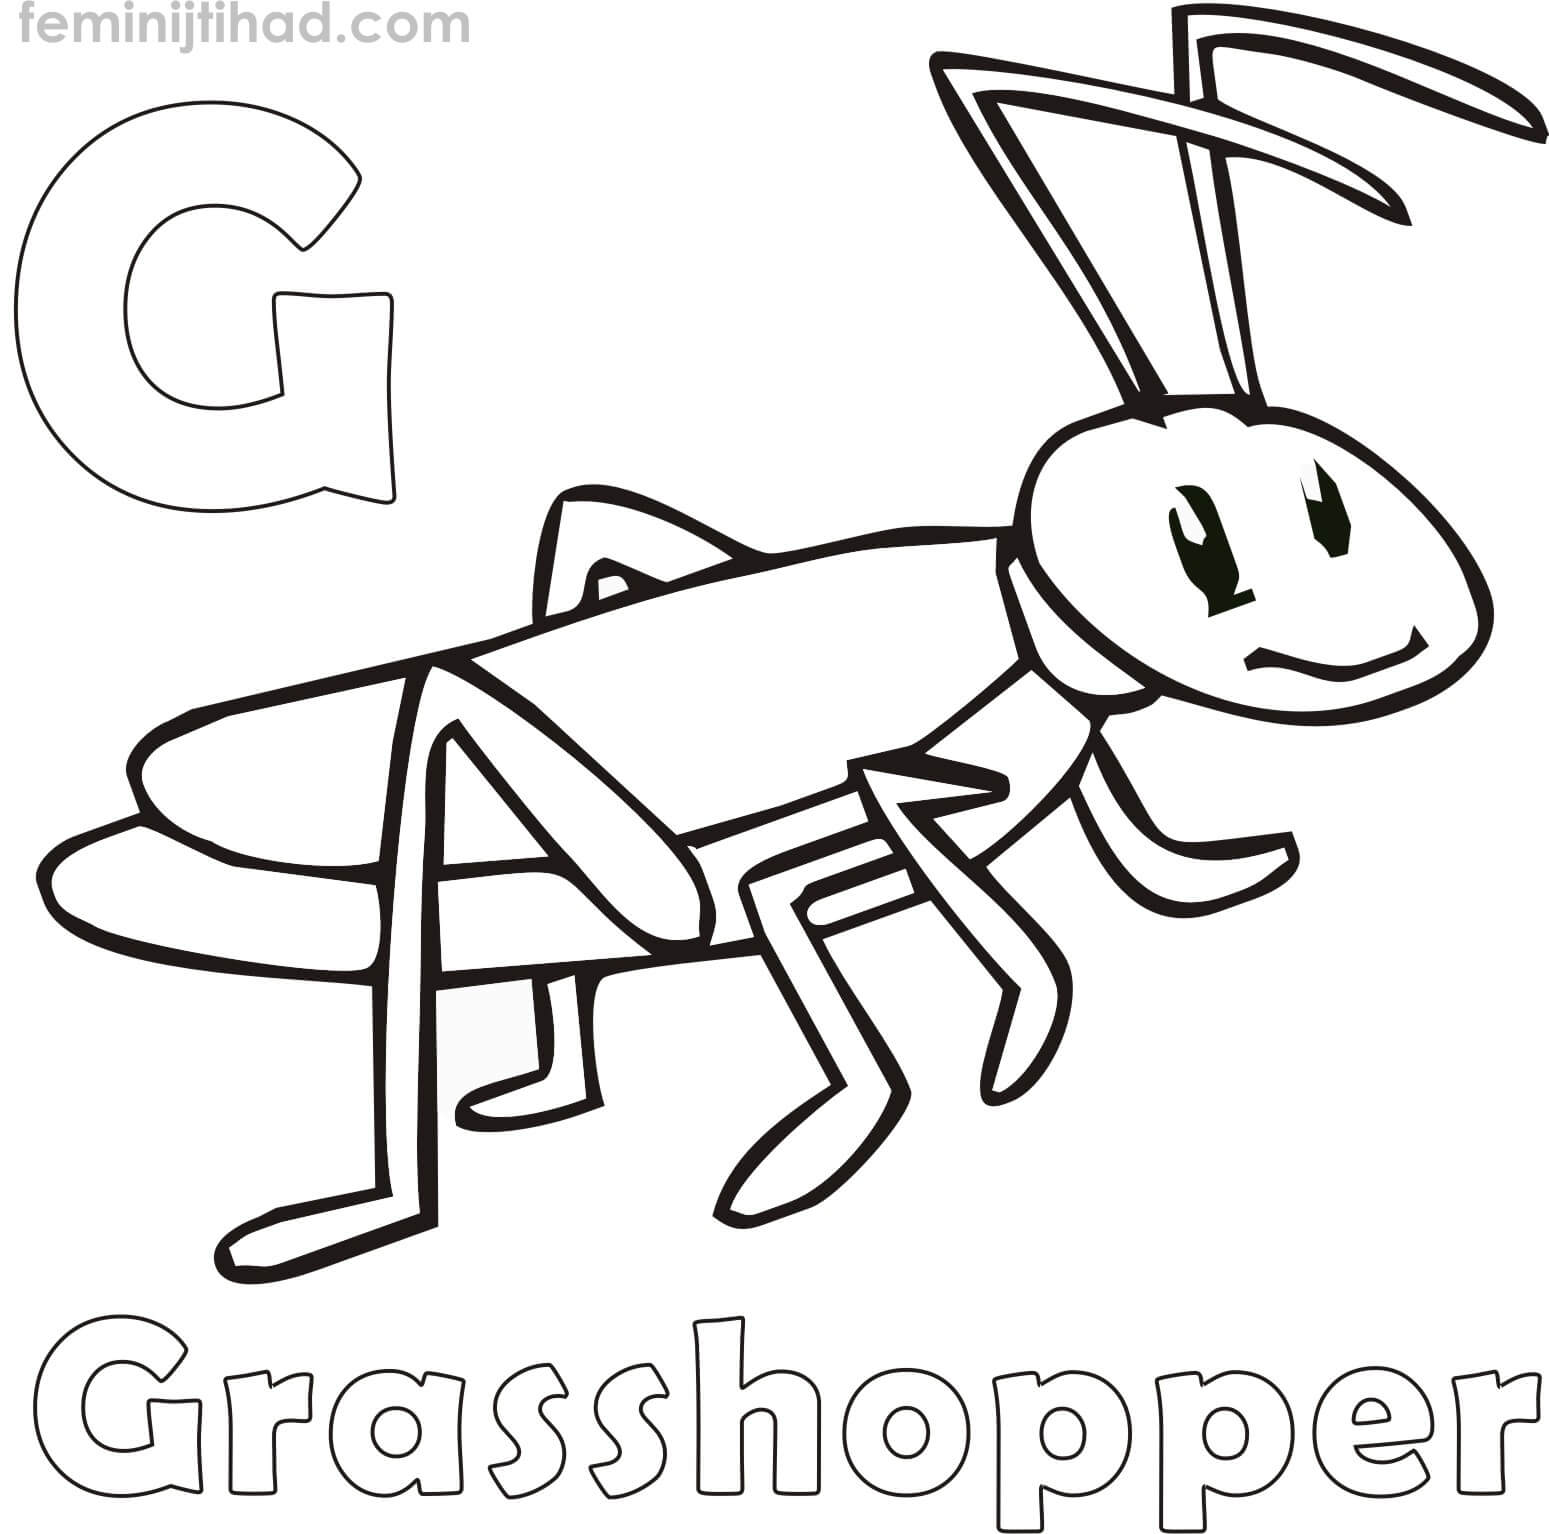 1549x1534 Grasshopper Coloring Pages Coloring Pages For Kids